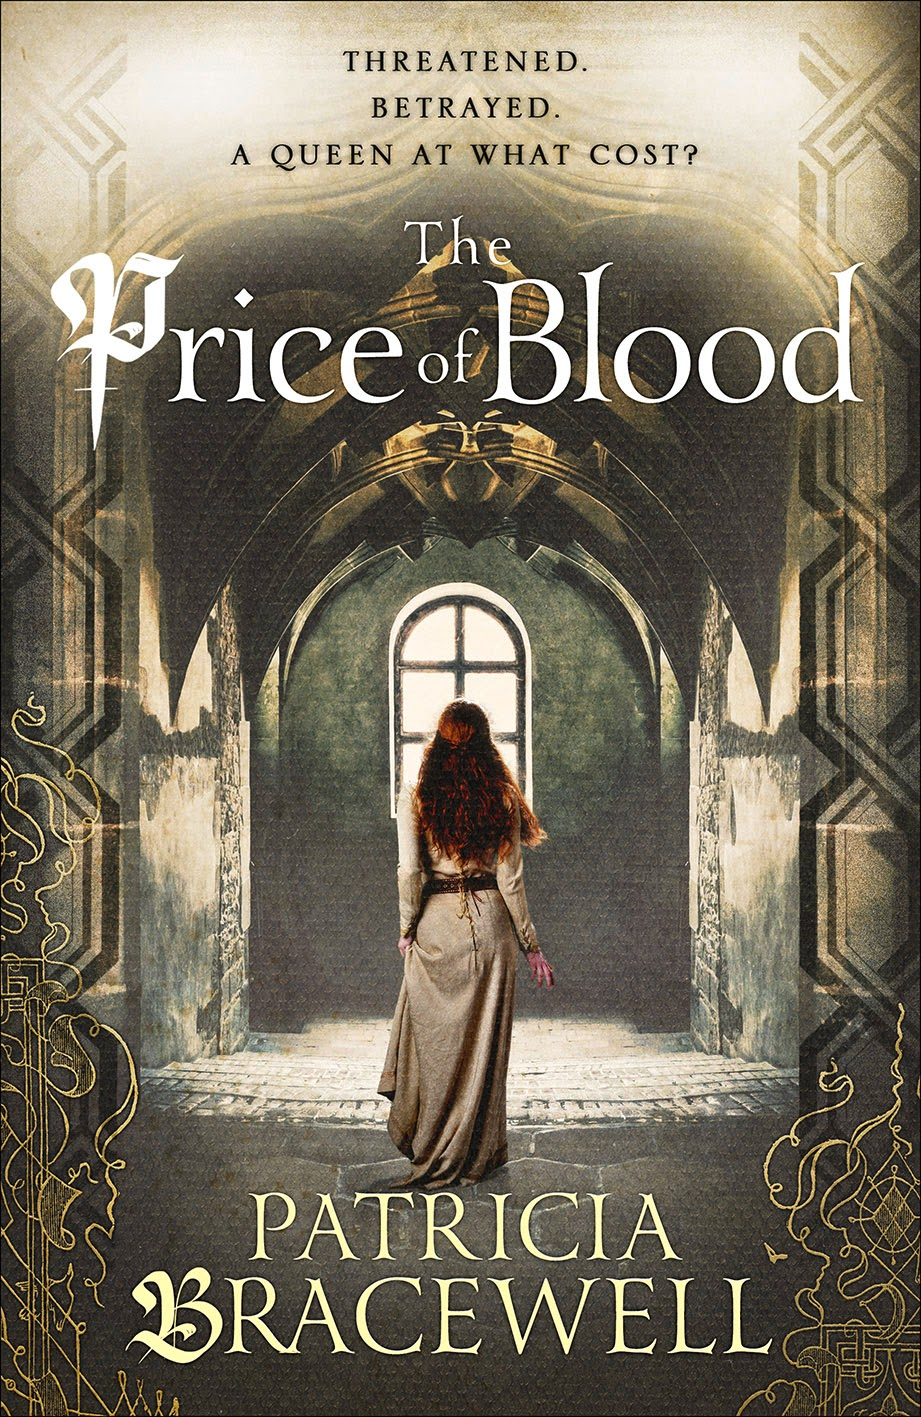 http://www.harpercollins.com.au/9780008104597/the-price-of-blood-the-emma-of-normandy-series-book-2